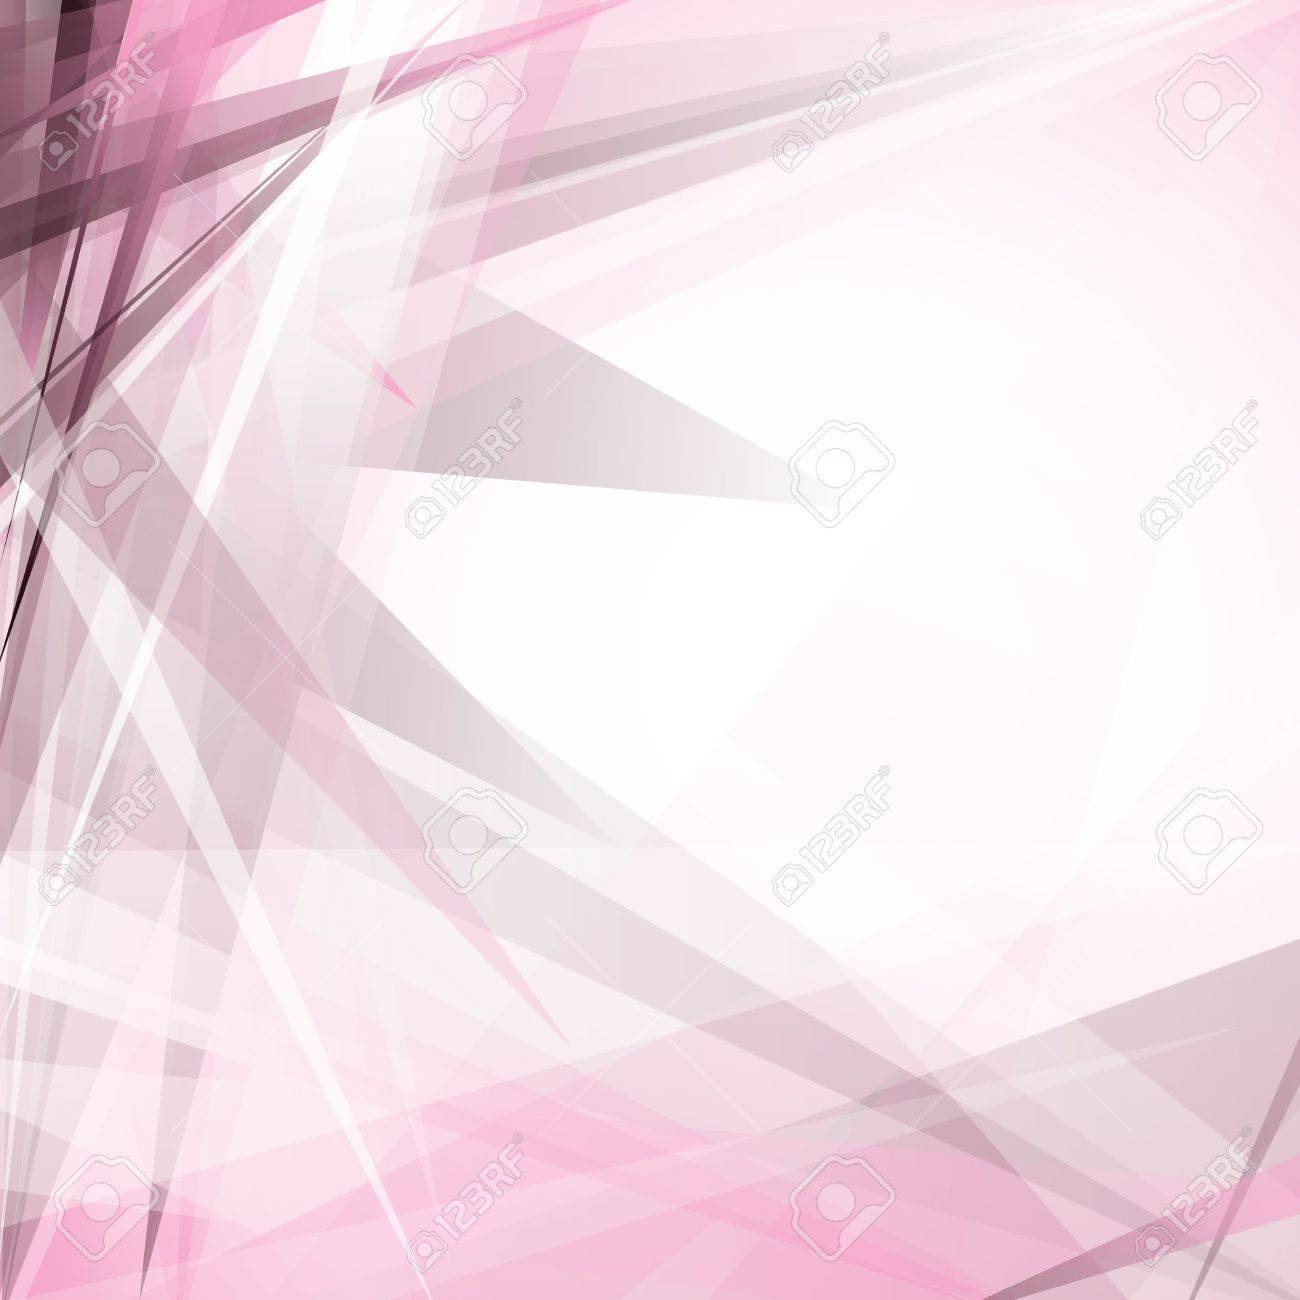 Background  Abstract Illustration Stock Vector - 14692368